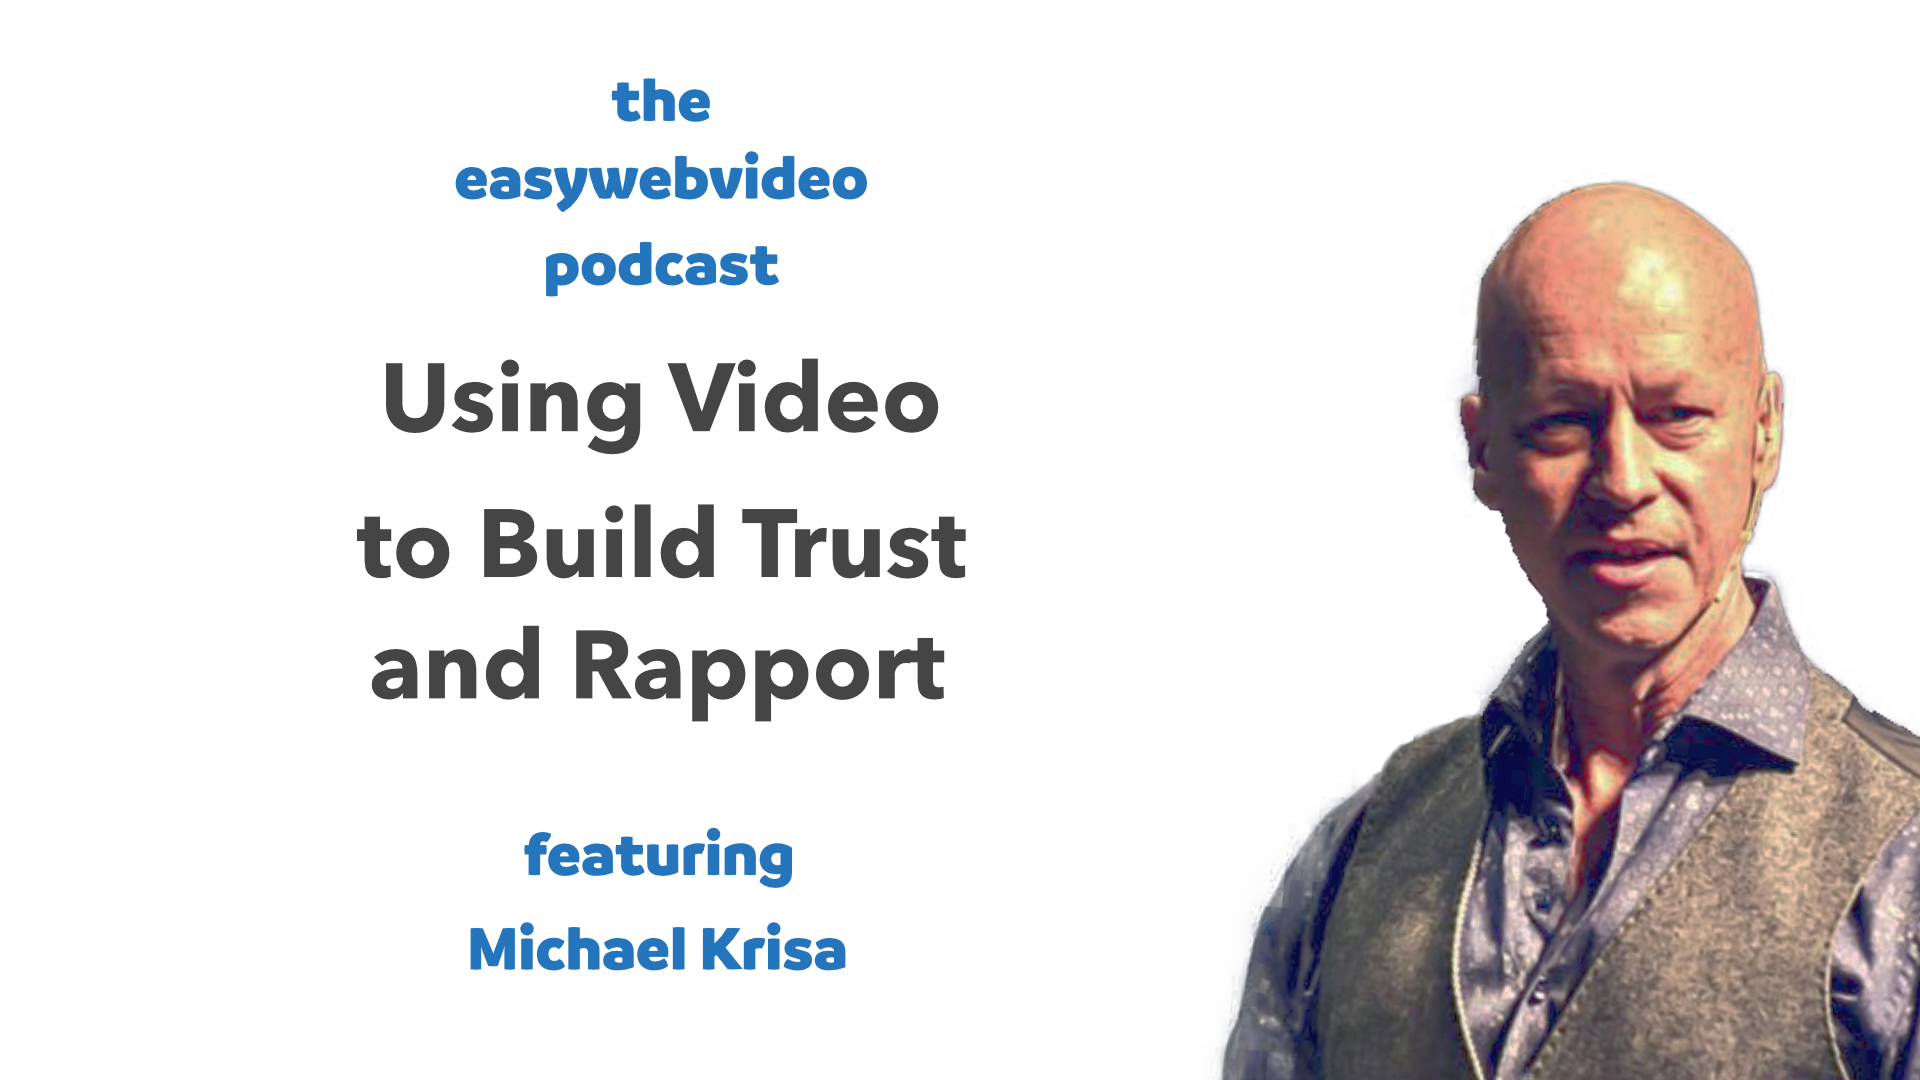 Easy Web Video Podcast: Using Video to Build Trust and Rapport